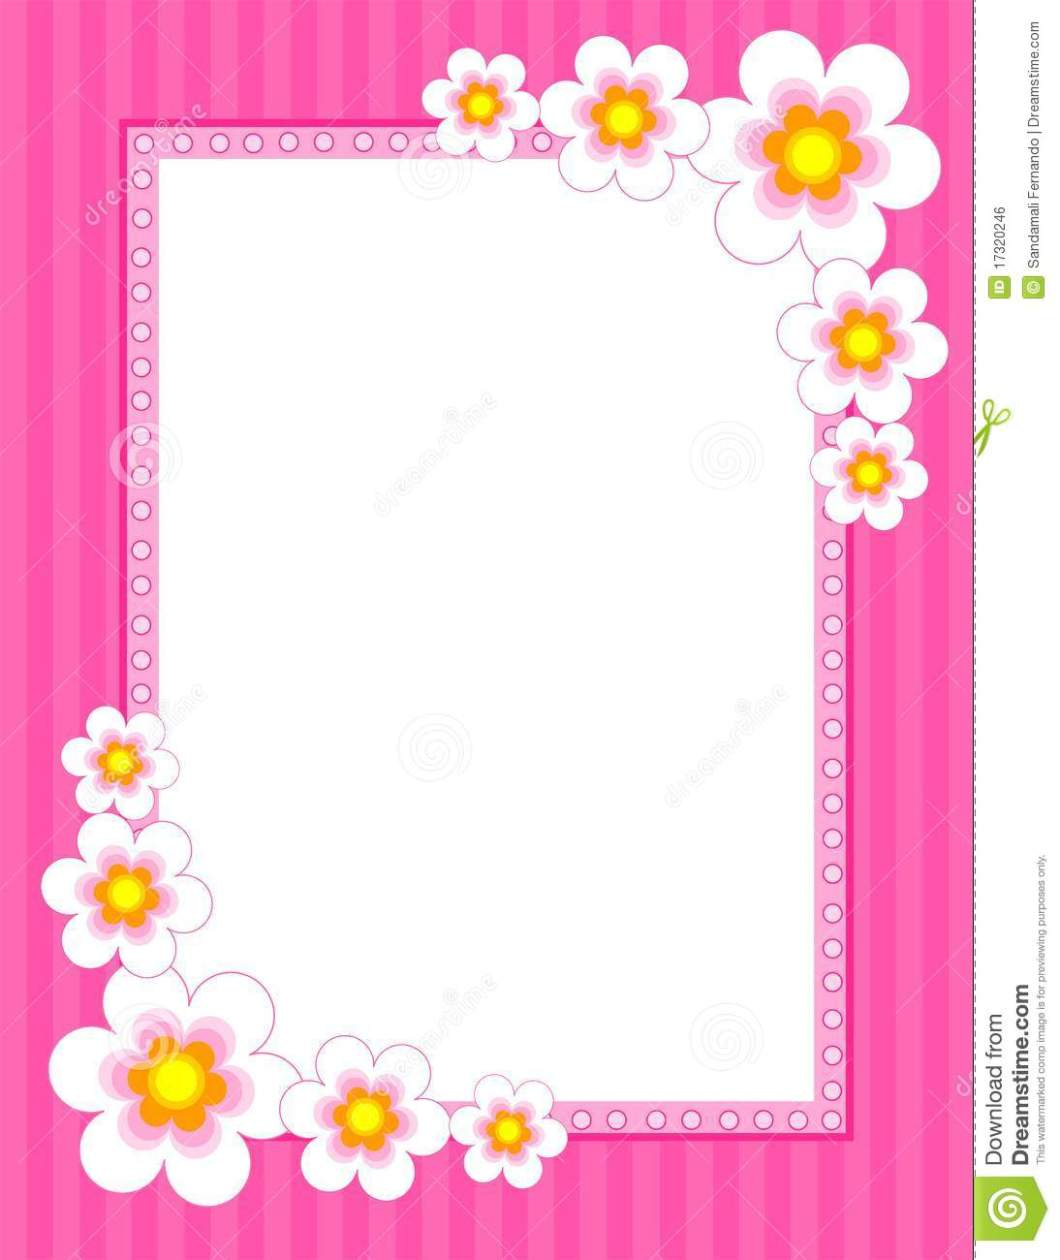 Cute Borders And Frames Designs Siteframes